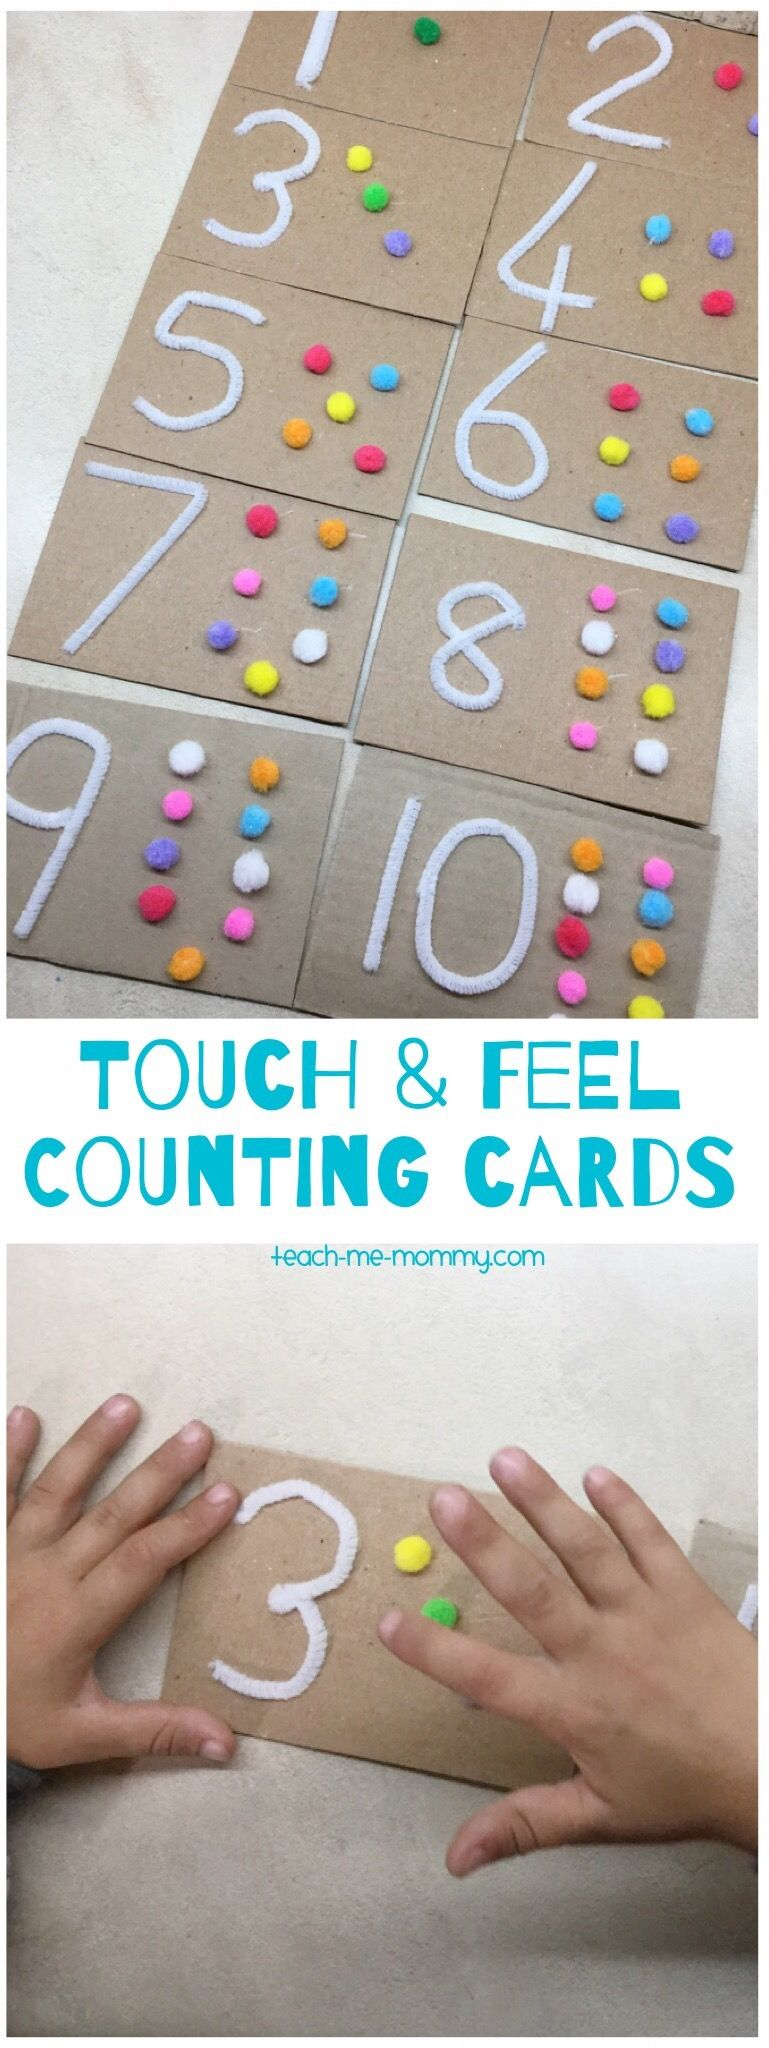 Touch & Feel Counting Cards | Math, Activities and School